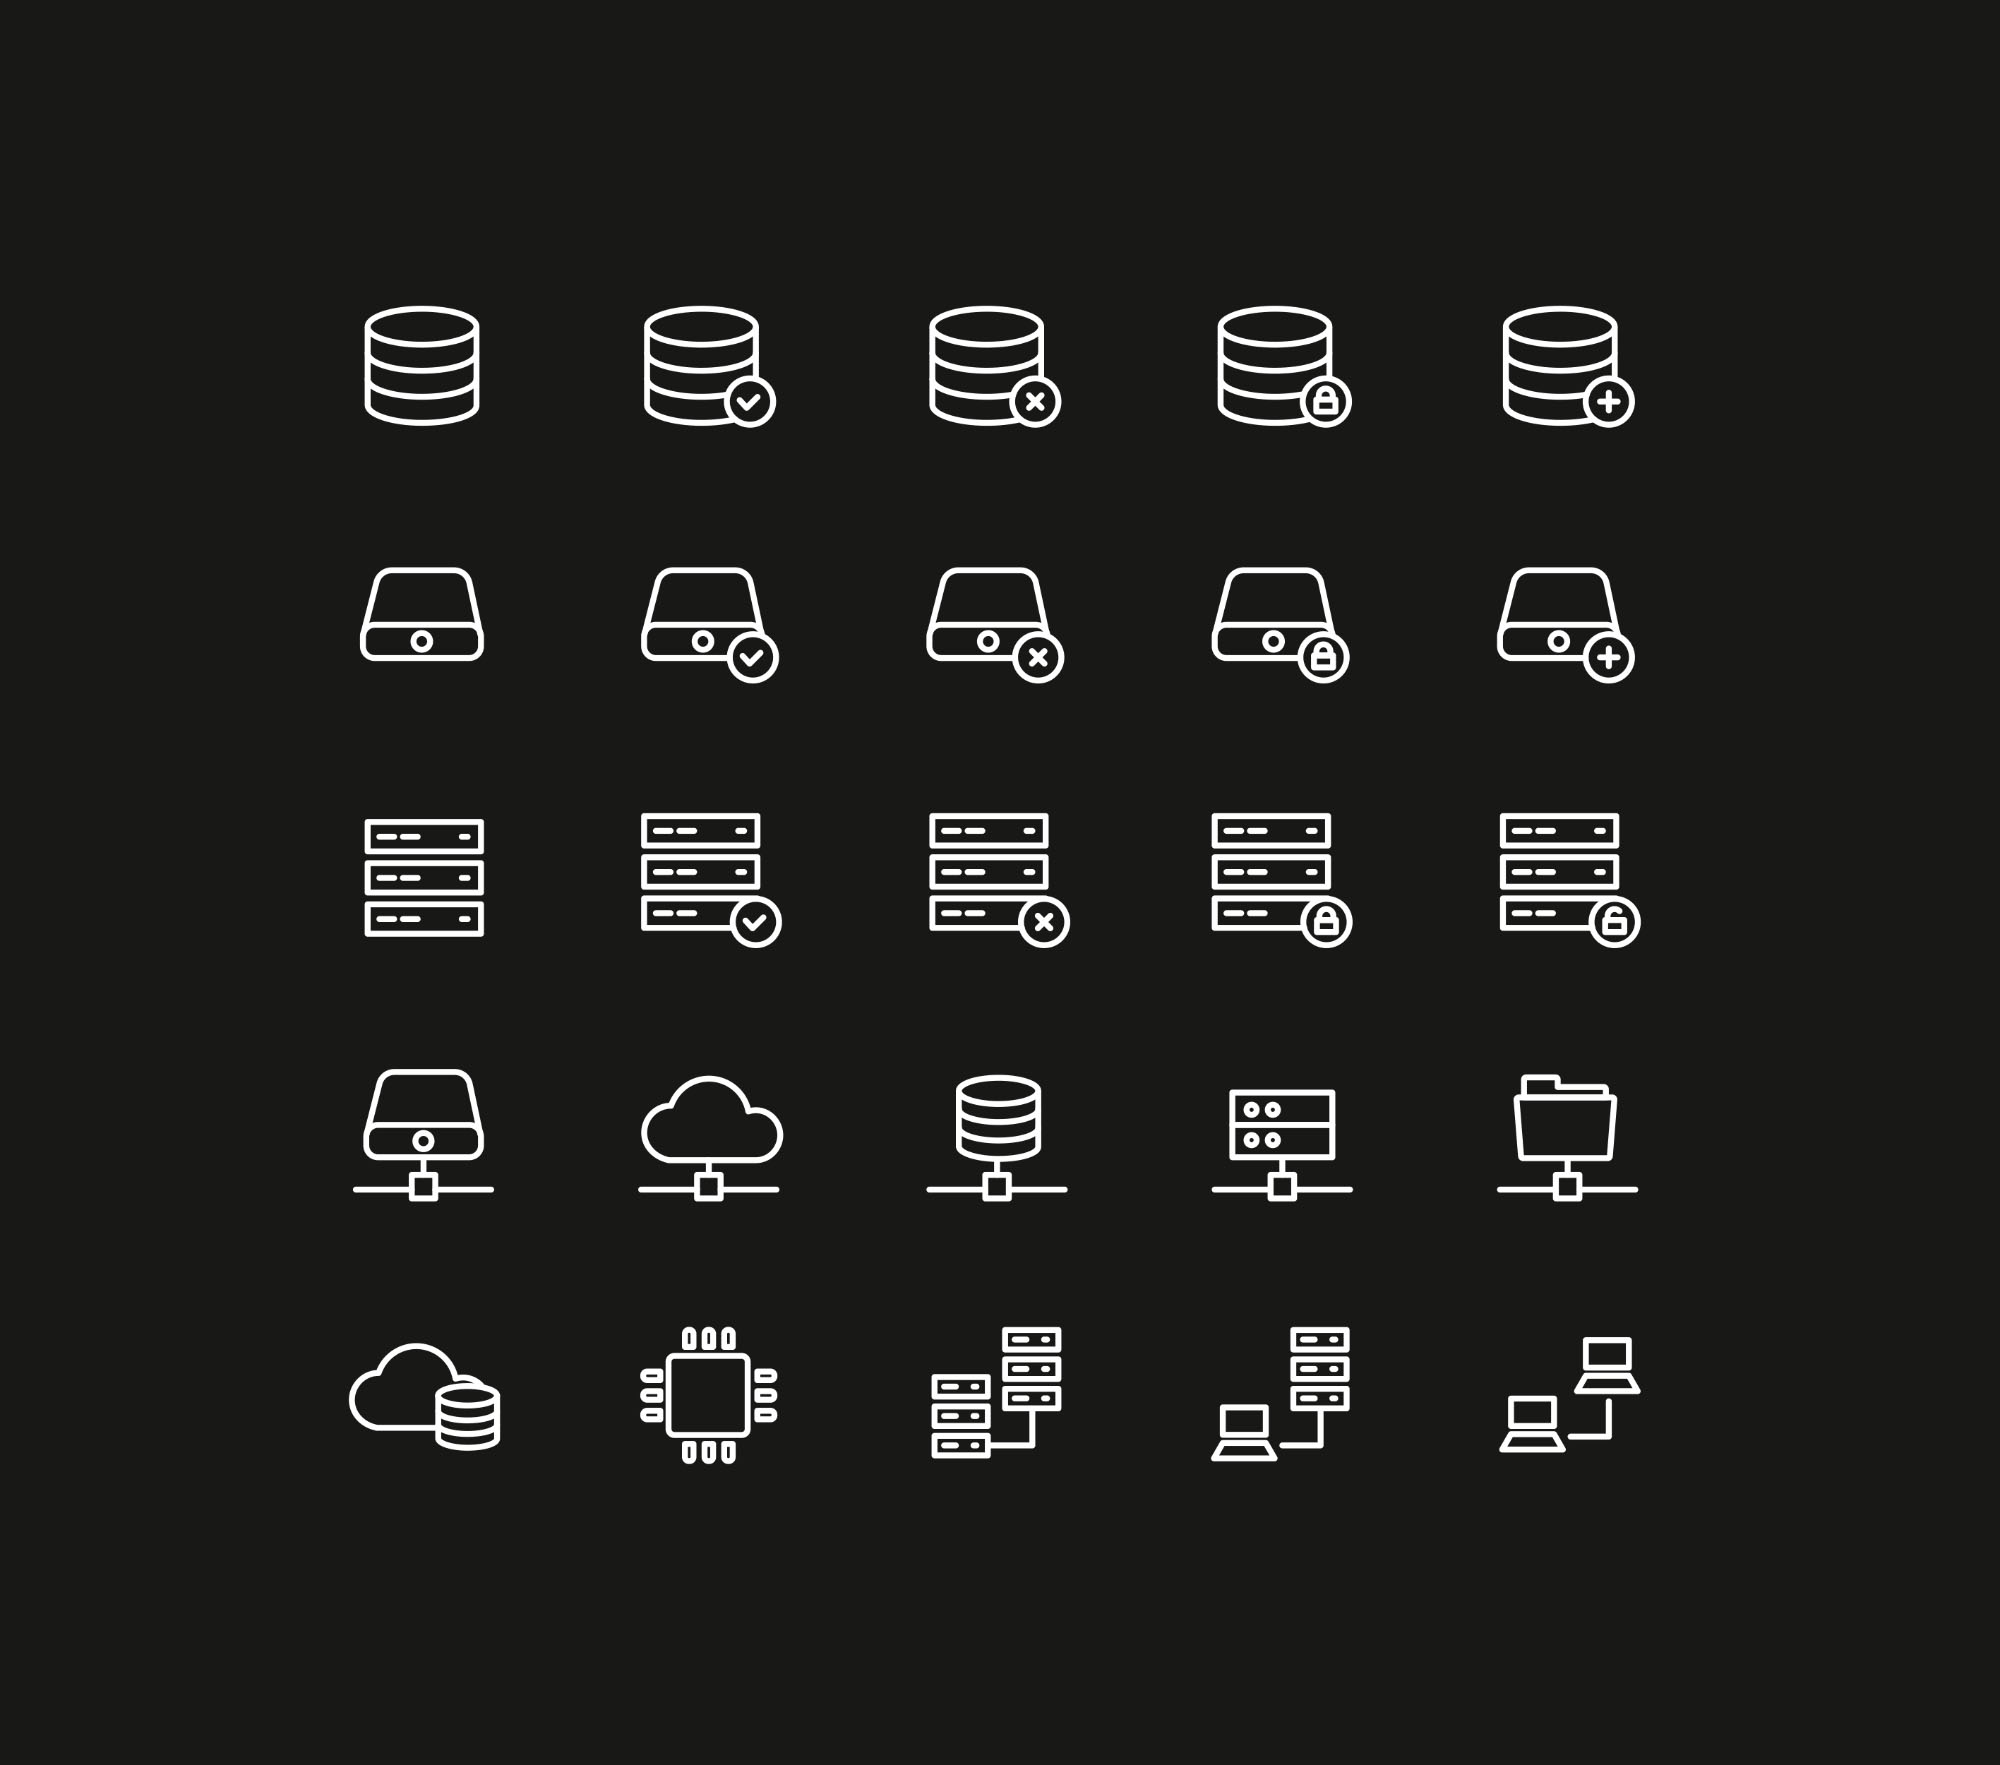 Database Storage Icons - Dark